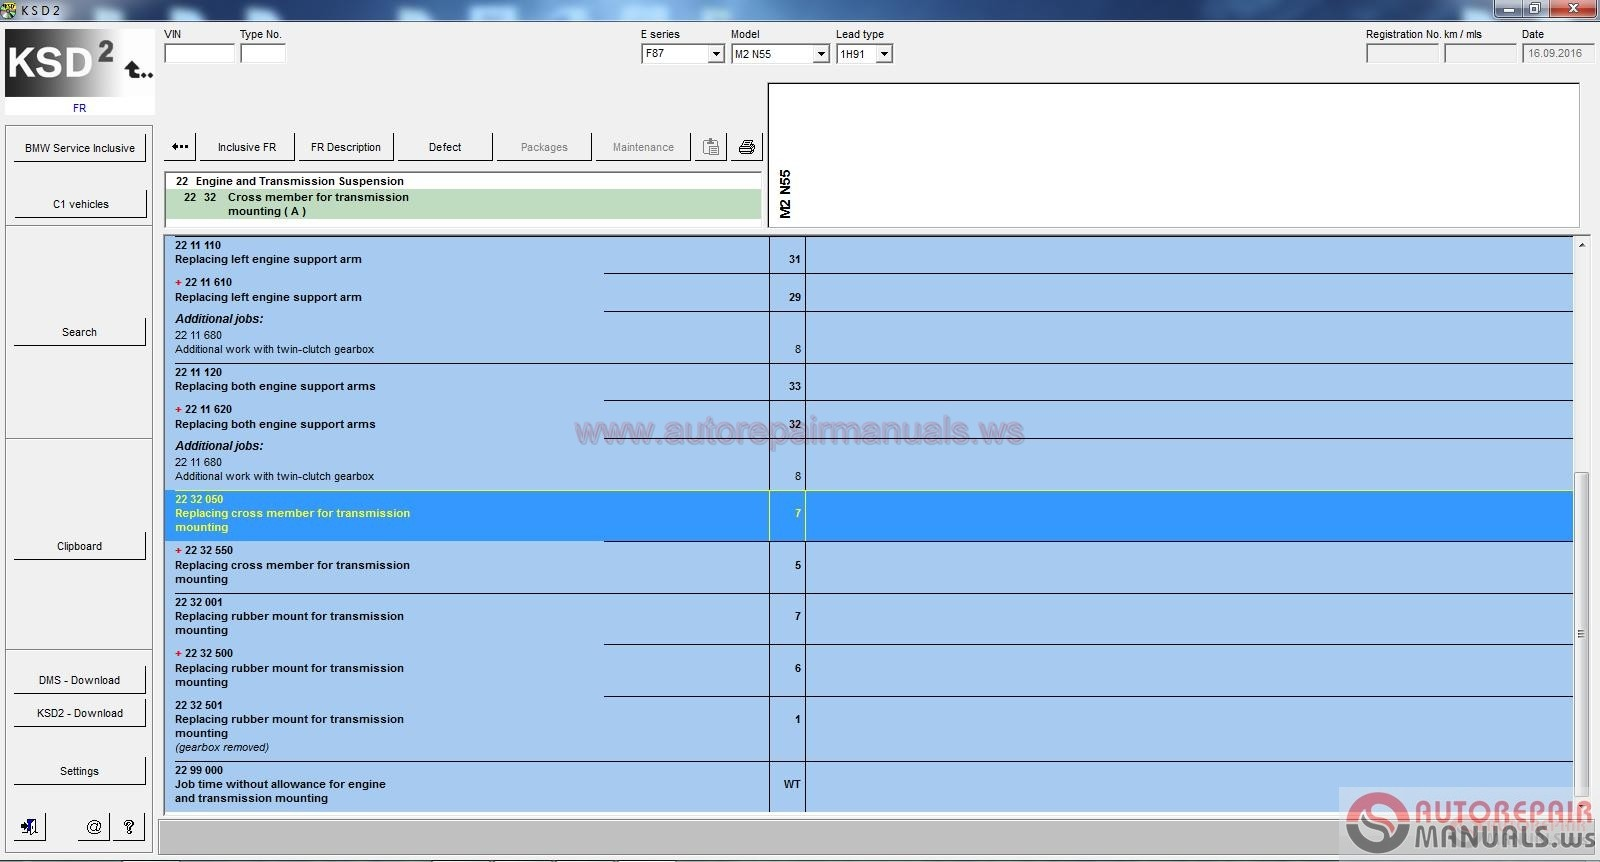 Bmw Wds Wiring Diagram System V12 3 Auto Electrical Engine Ksd2 09 2016 Service Information